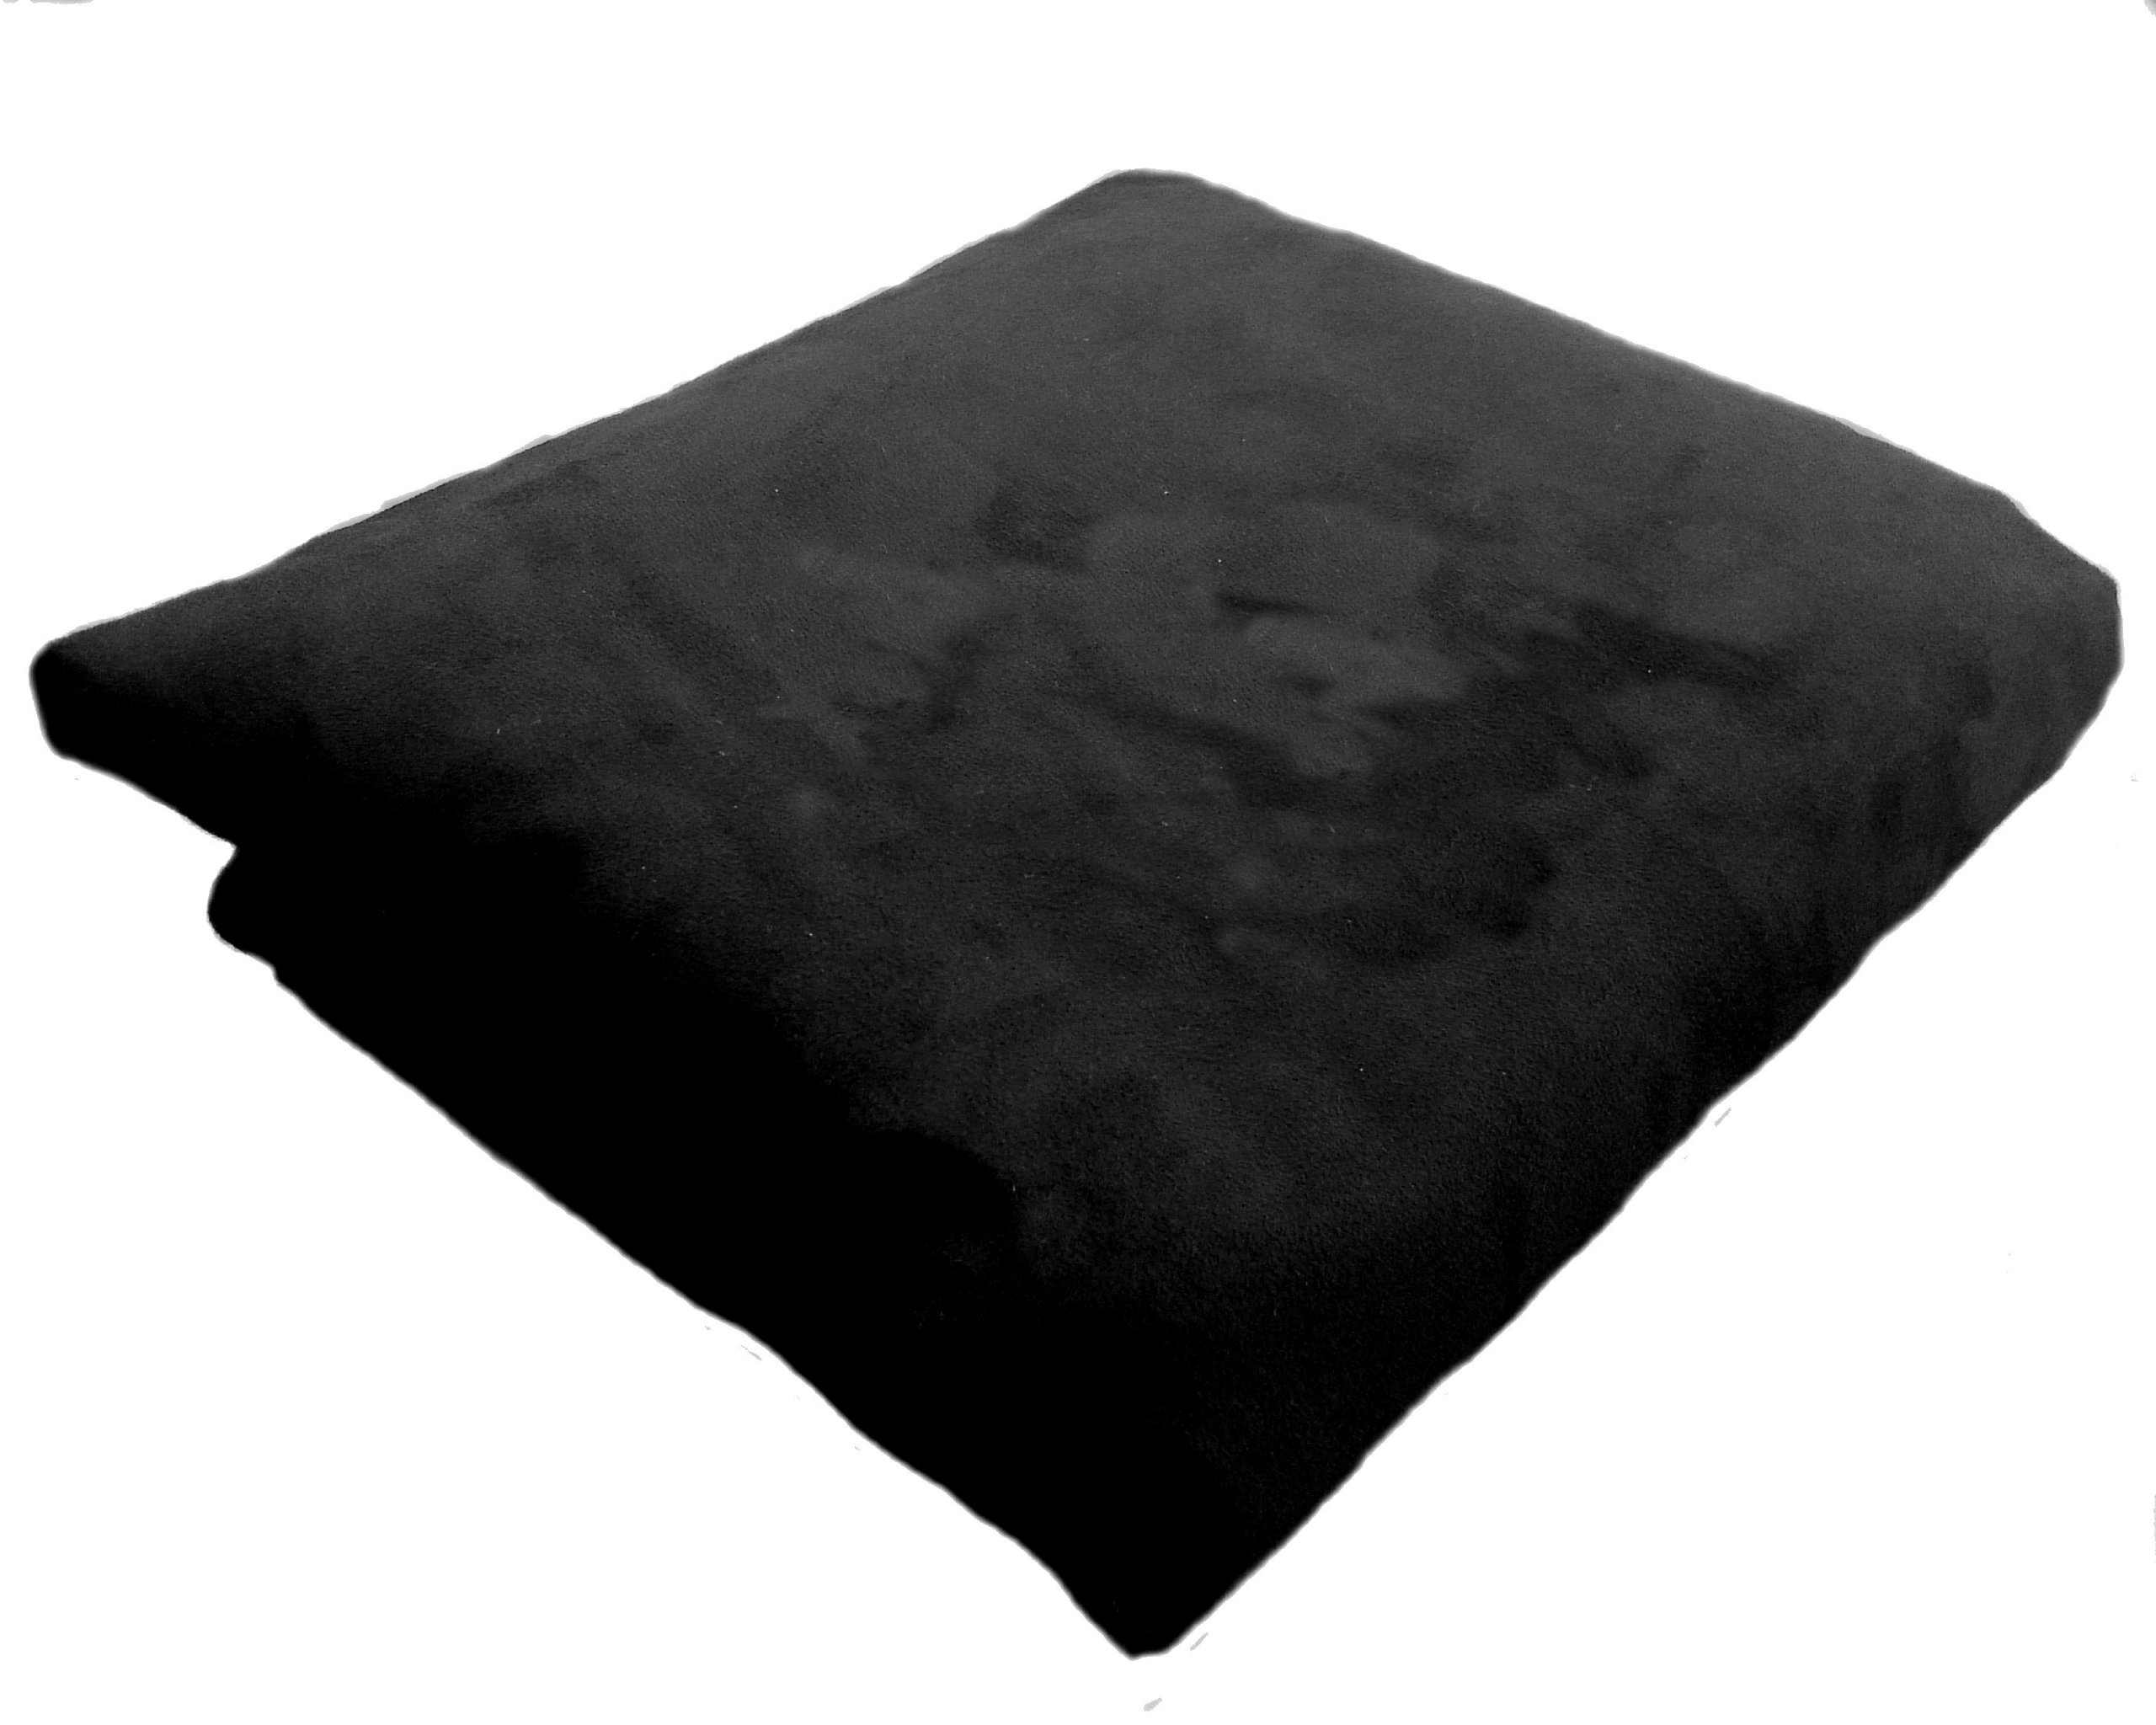 Replacement Cover for 6 Foot Cozy Sack Bean Bag Chair 48 Inch Diameter Durable Double Stitch Construction Machine Wash